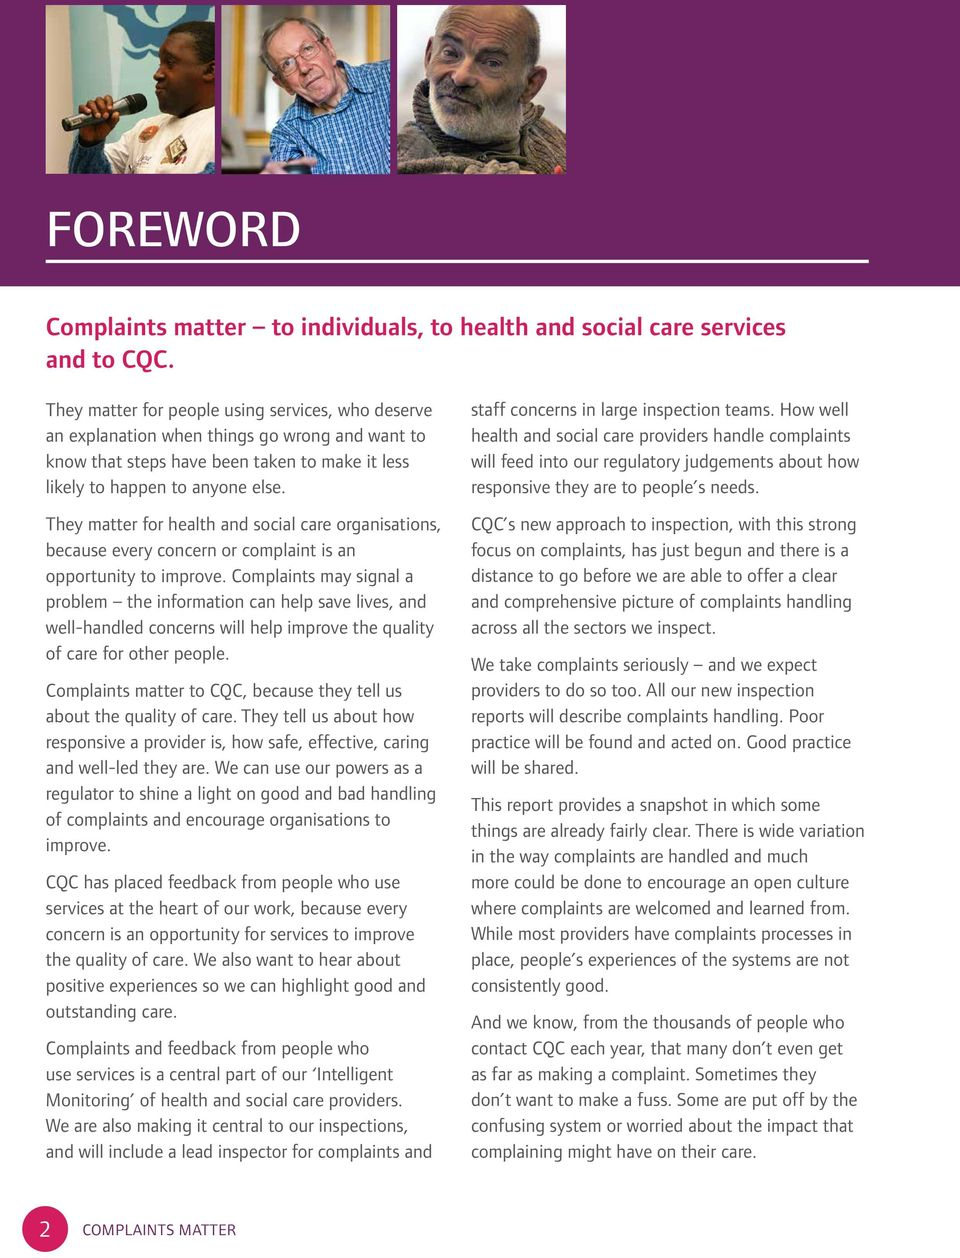 They matter for health and social care organisations, because every concern or complaint is an opportunity to improve.